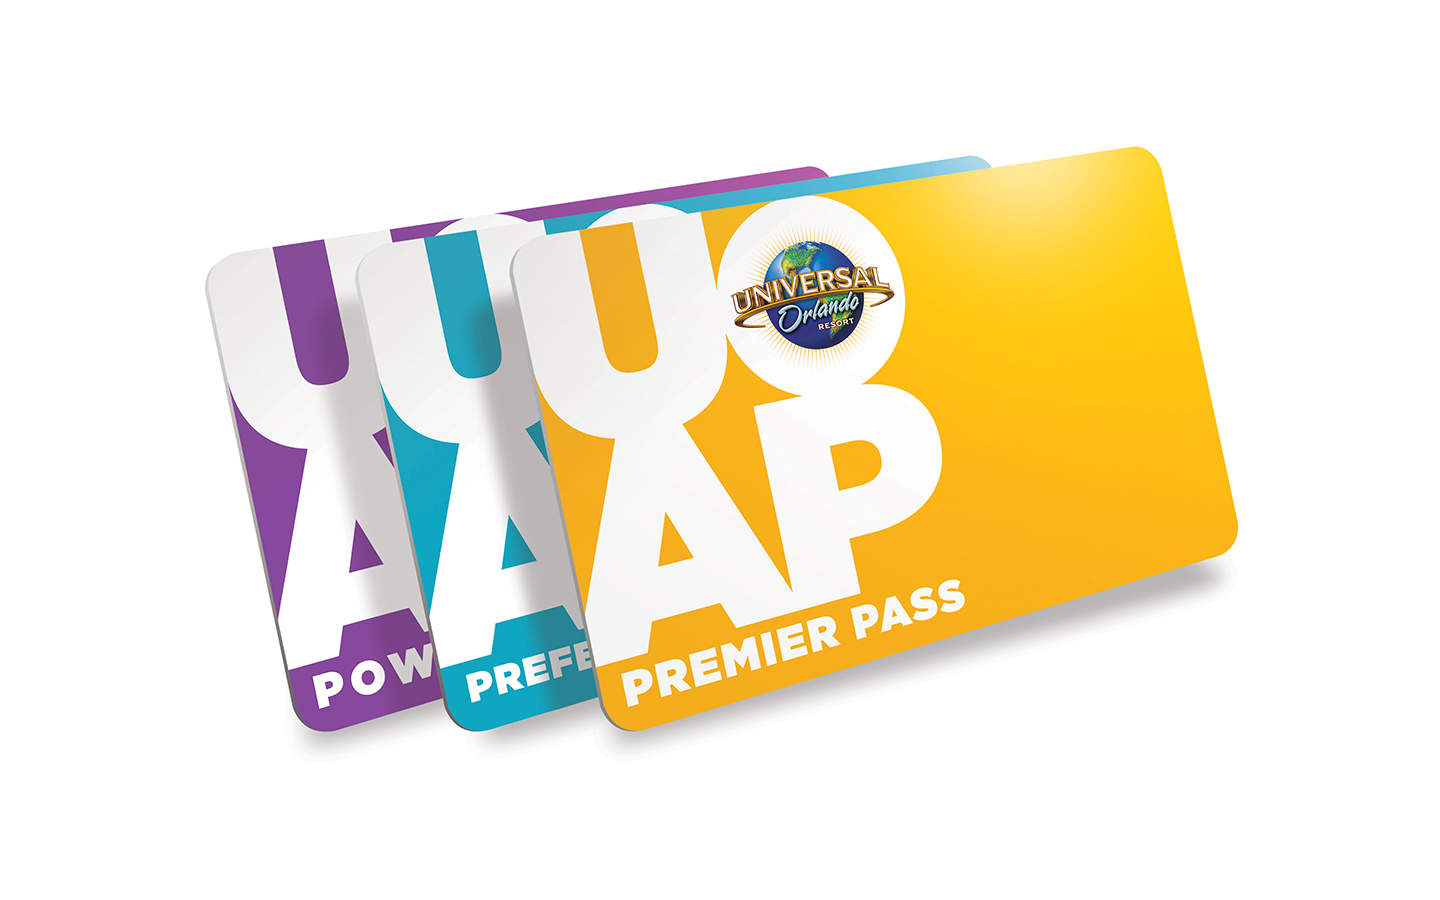 Plastic Annual Passes confirmed by Universal Orlando